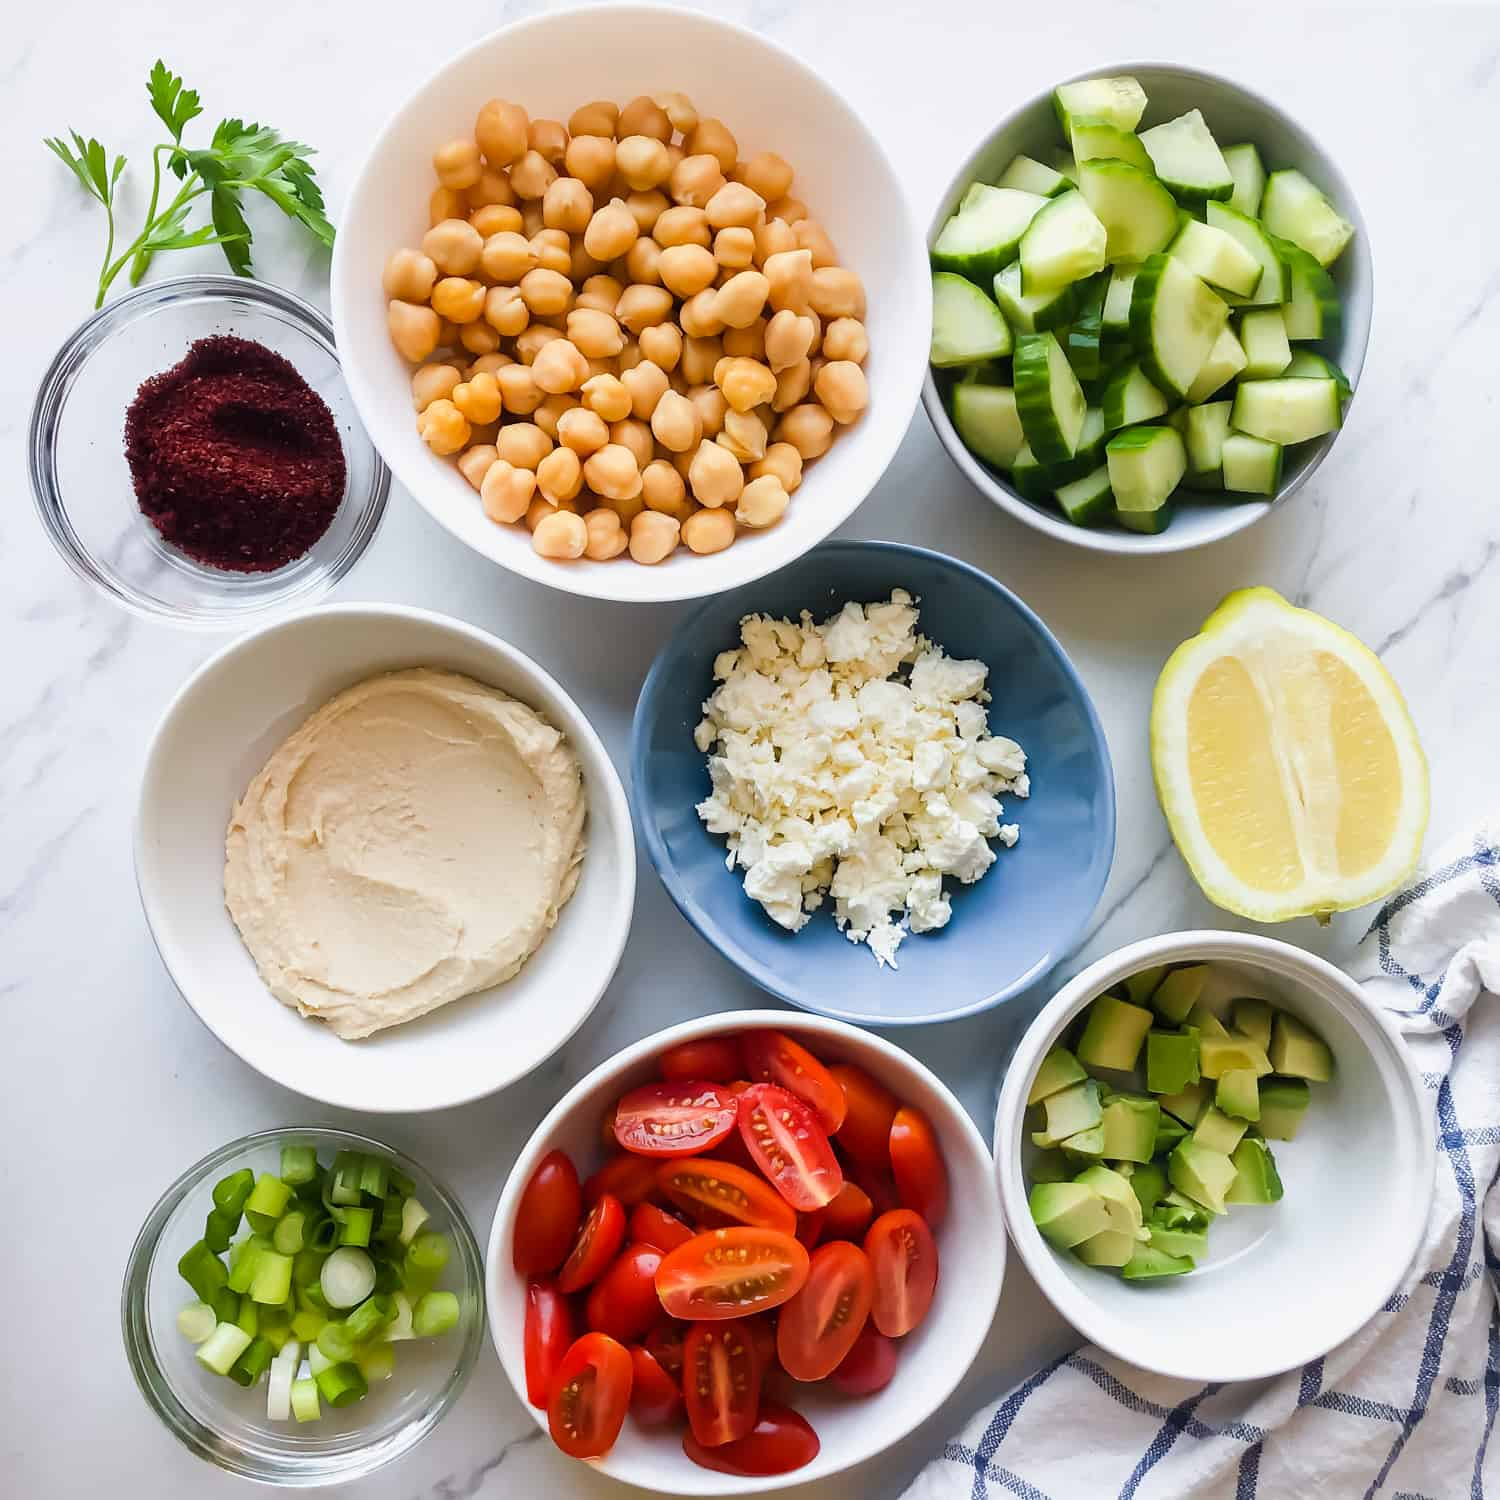 ingredients for Chickpea Avocado Salad in bowls